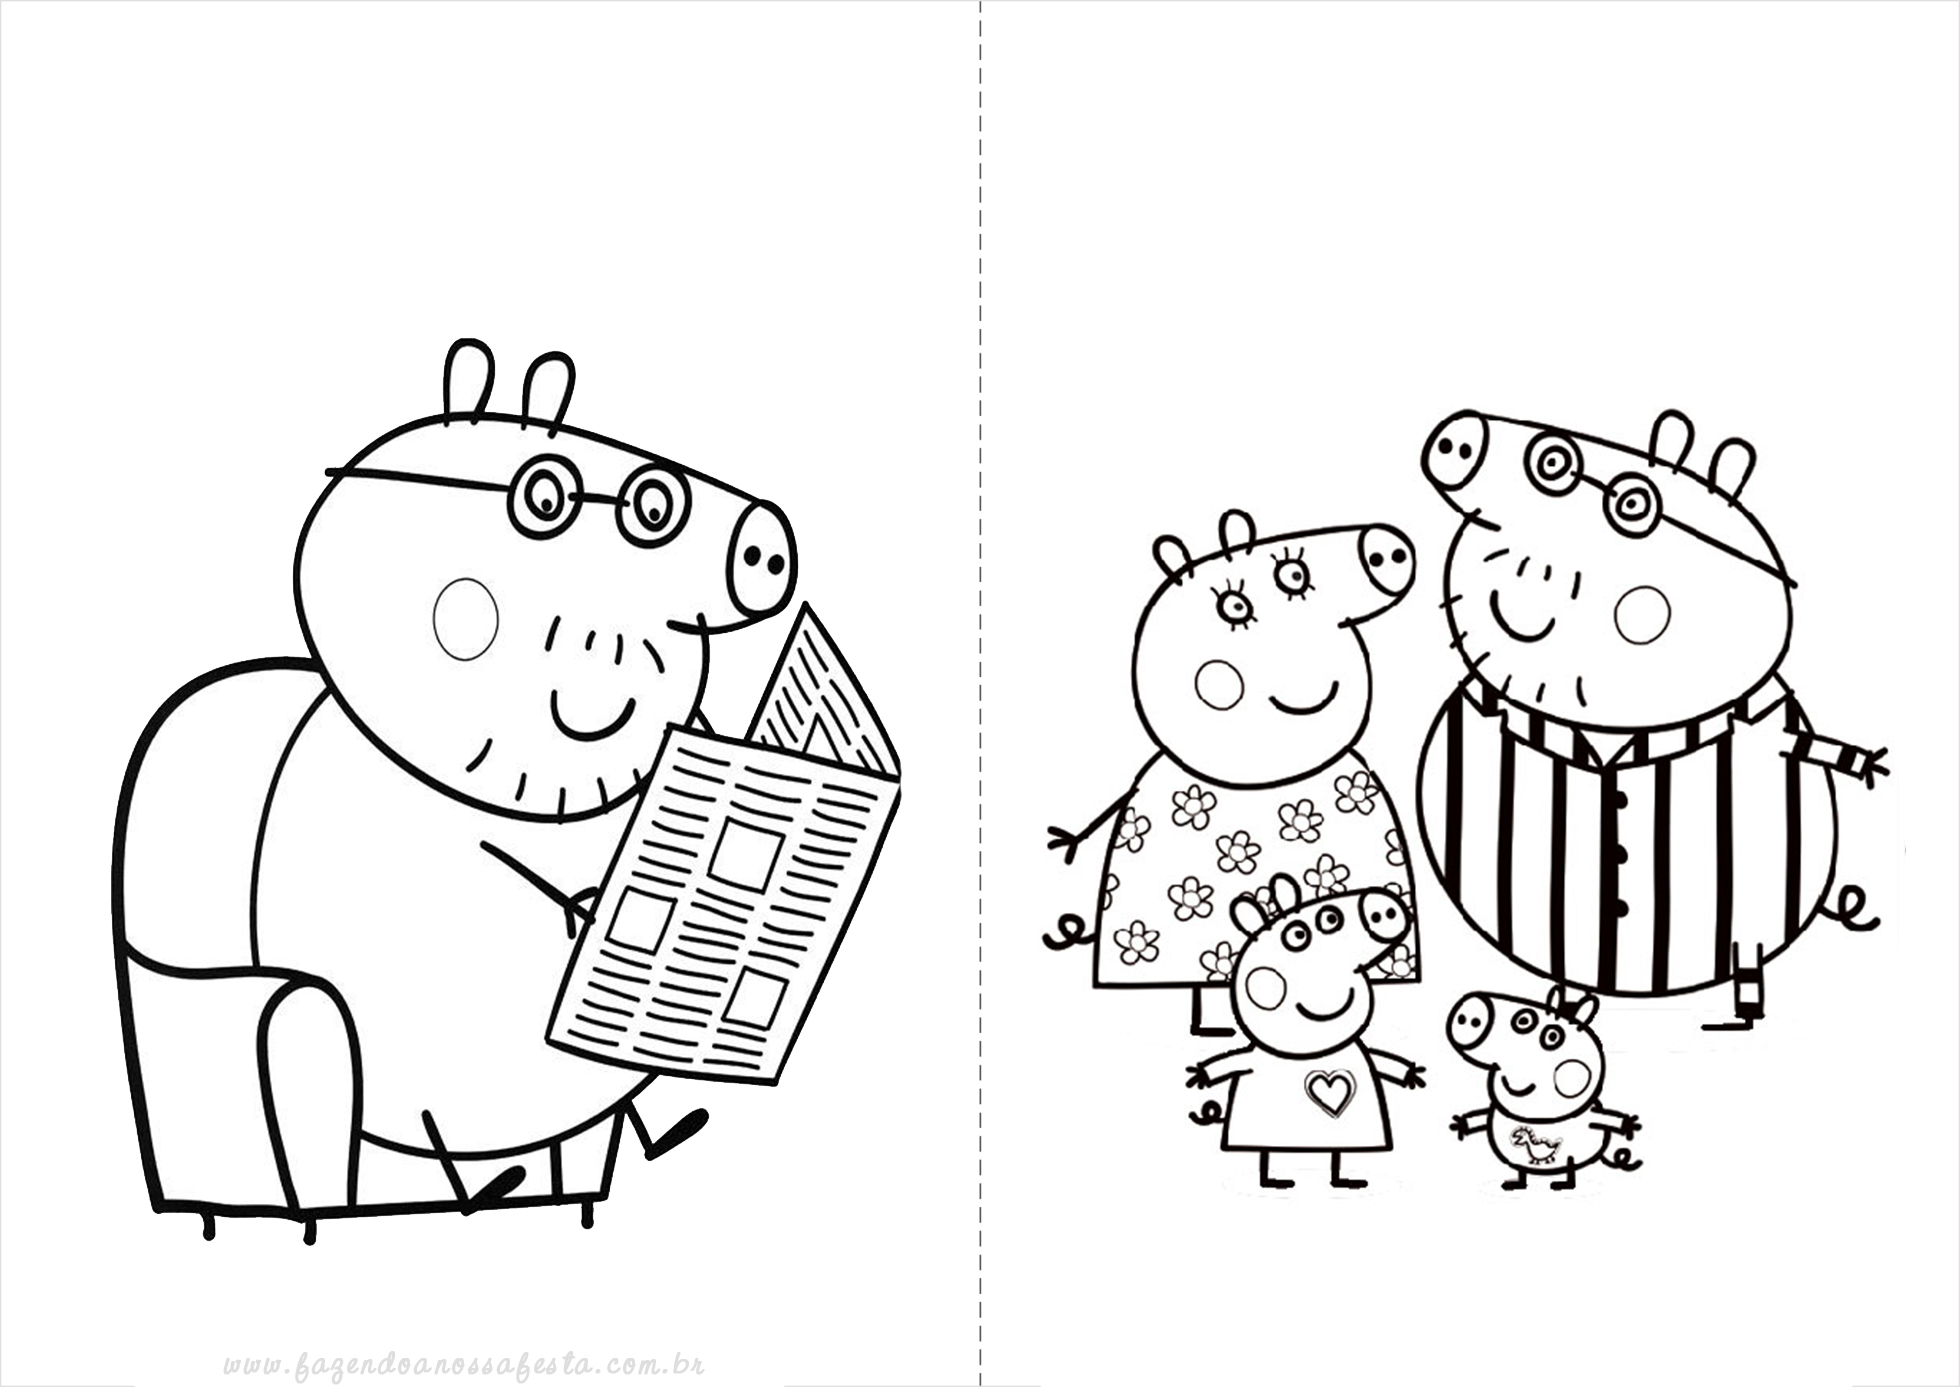 Peppa Pig s family and the puddles coloring page printable game.